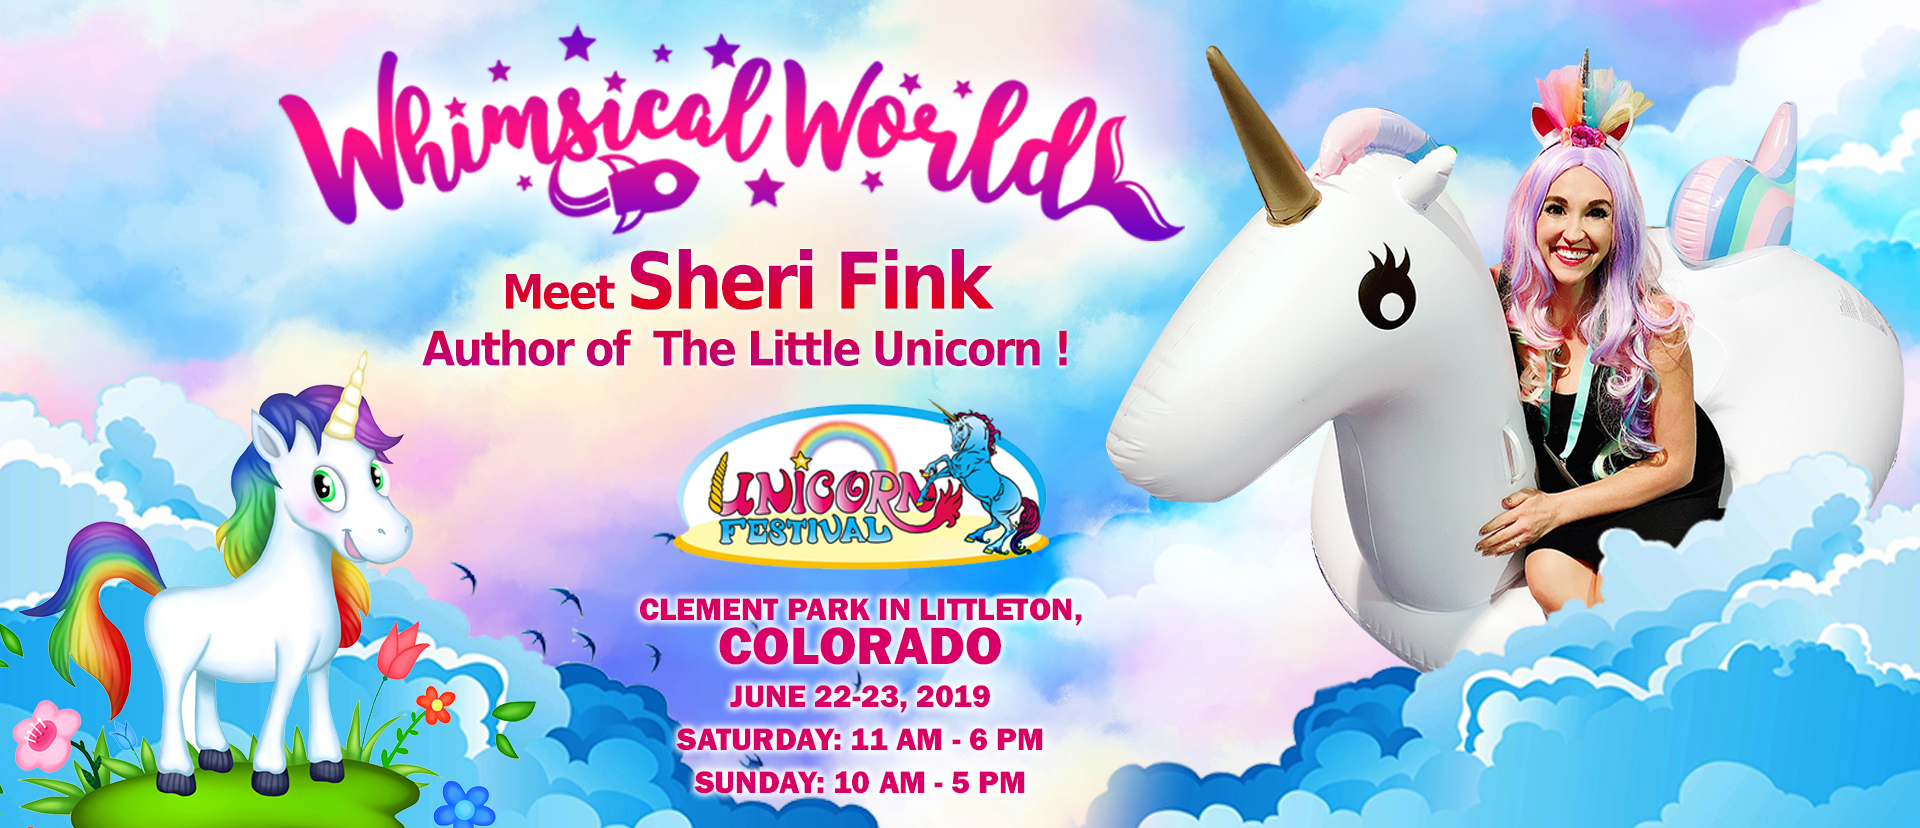 Unicorn Festival featuring Sheri Fink, Author of The Little Unicorn